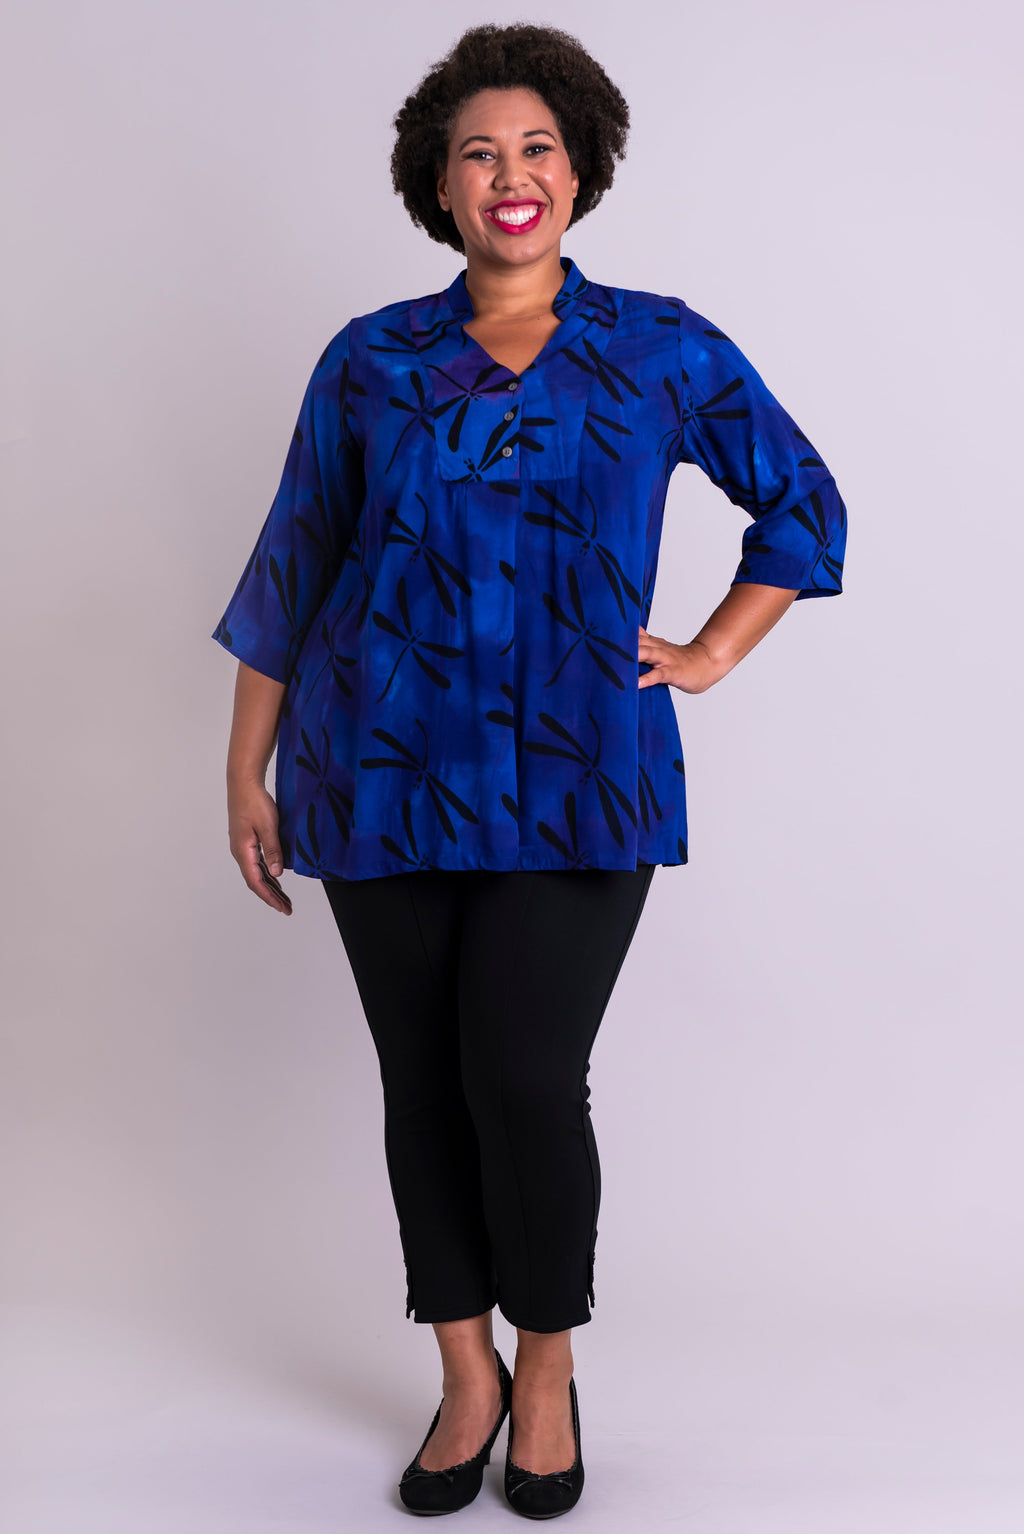 Shirley Blouse, Violet Dragonfly, Batik Art - Blue Sky Clothing Co